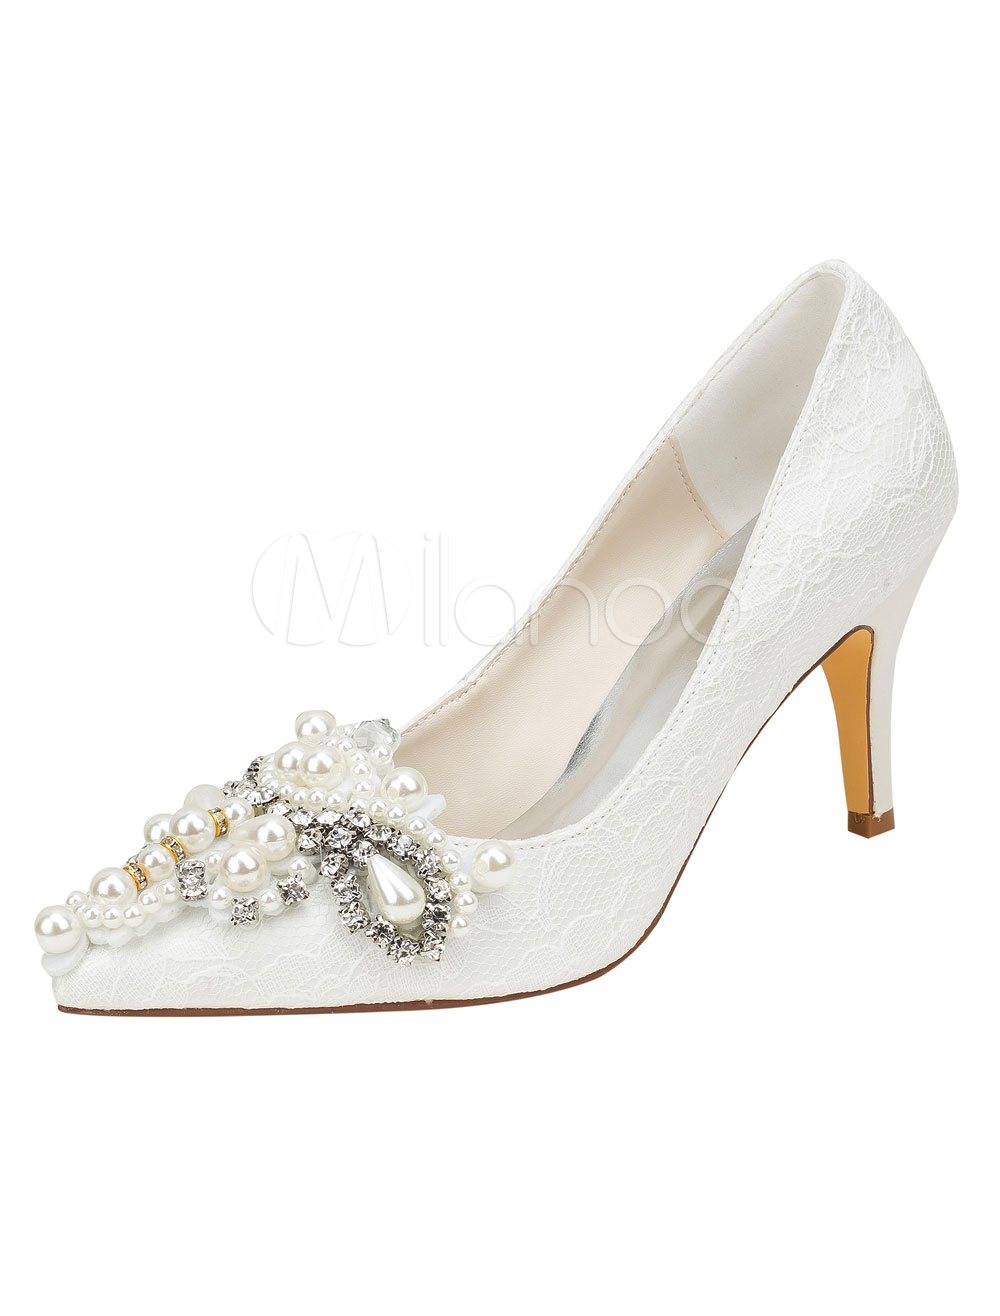 Buy Lace Wedding Shoes Ivory Pointed Toe Rhinestones Beaded High Heel Pumps for $54.99 in Milanoo store